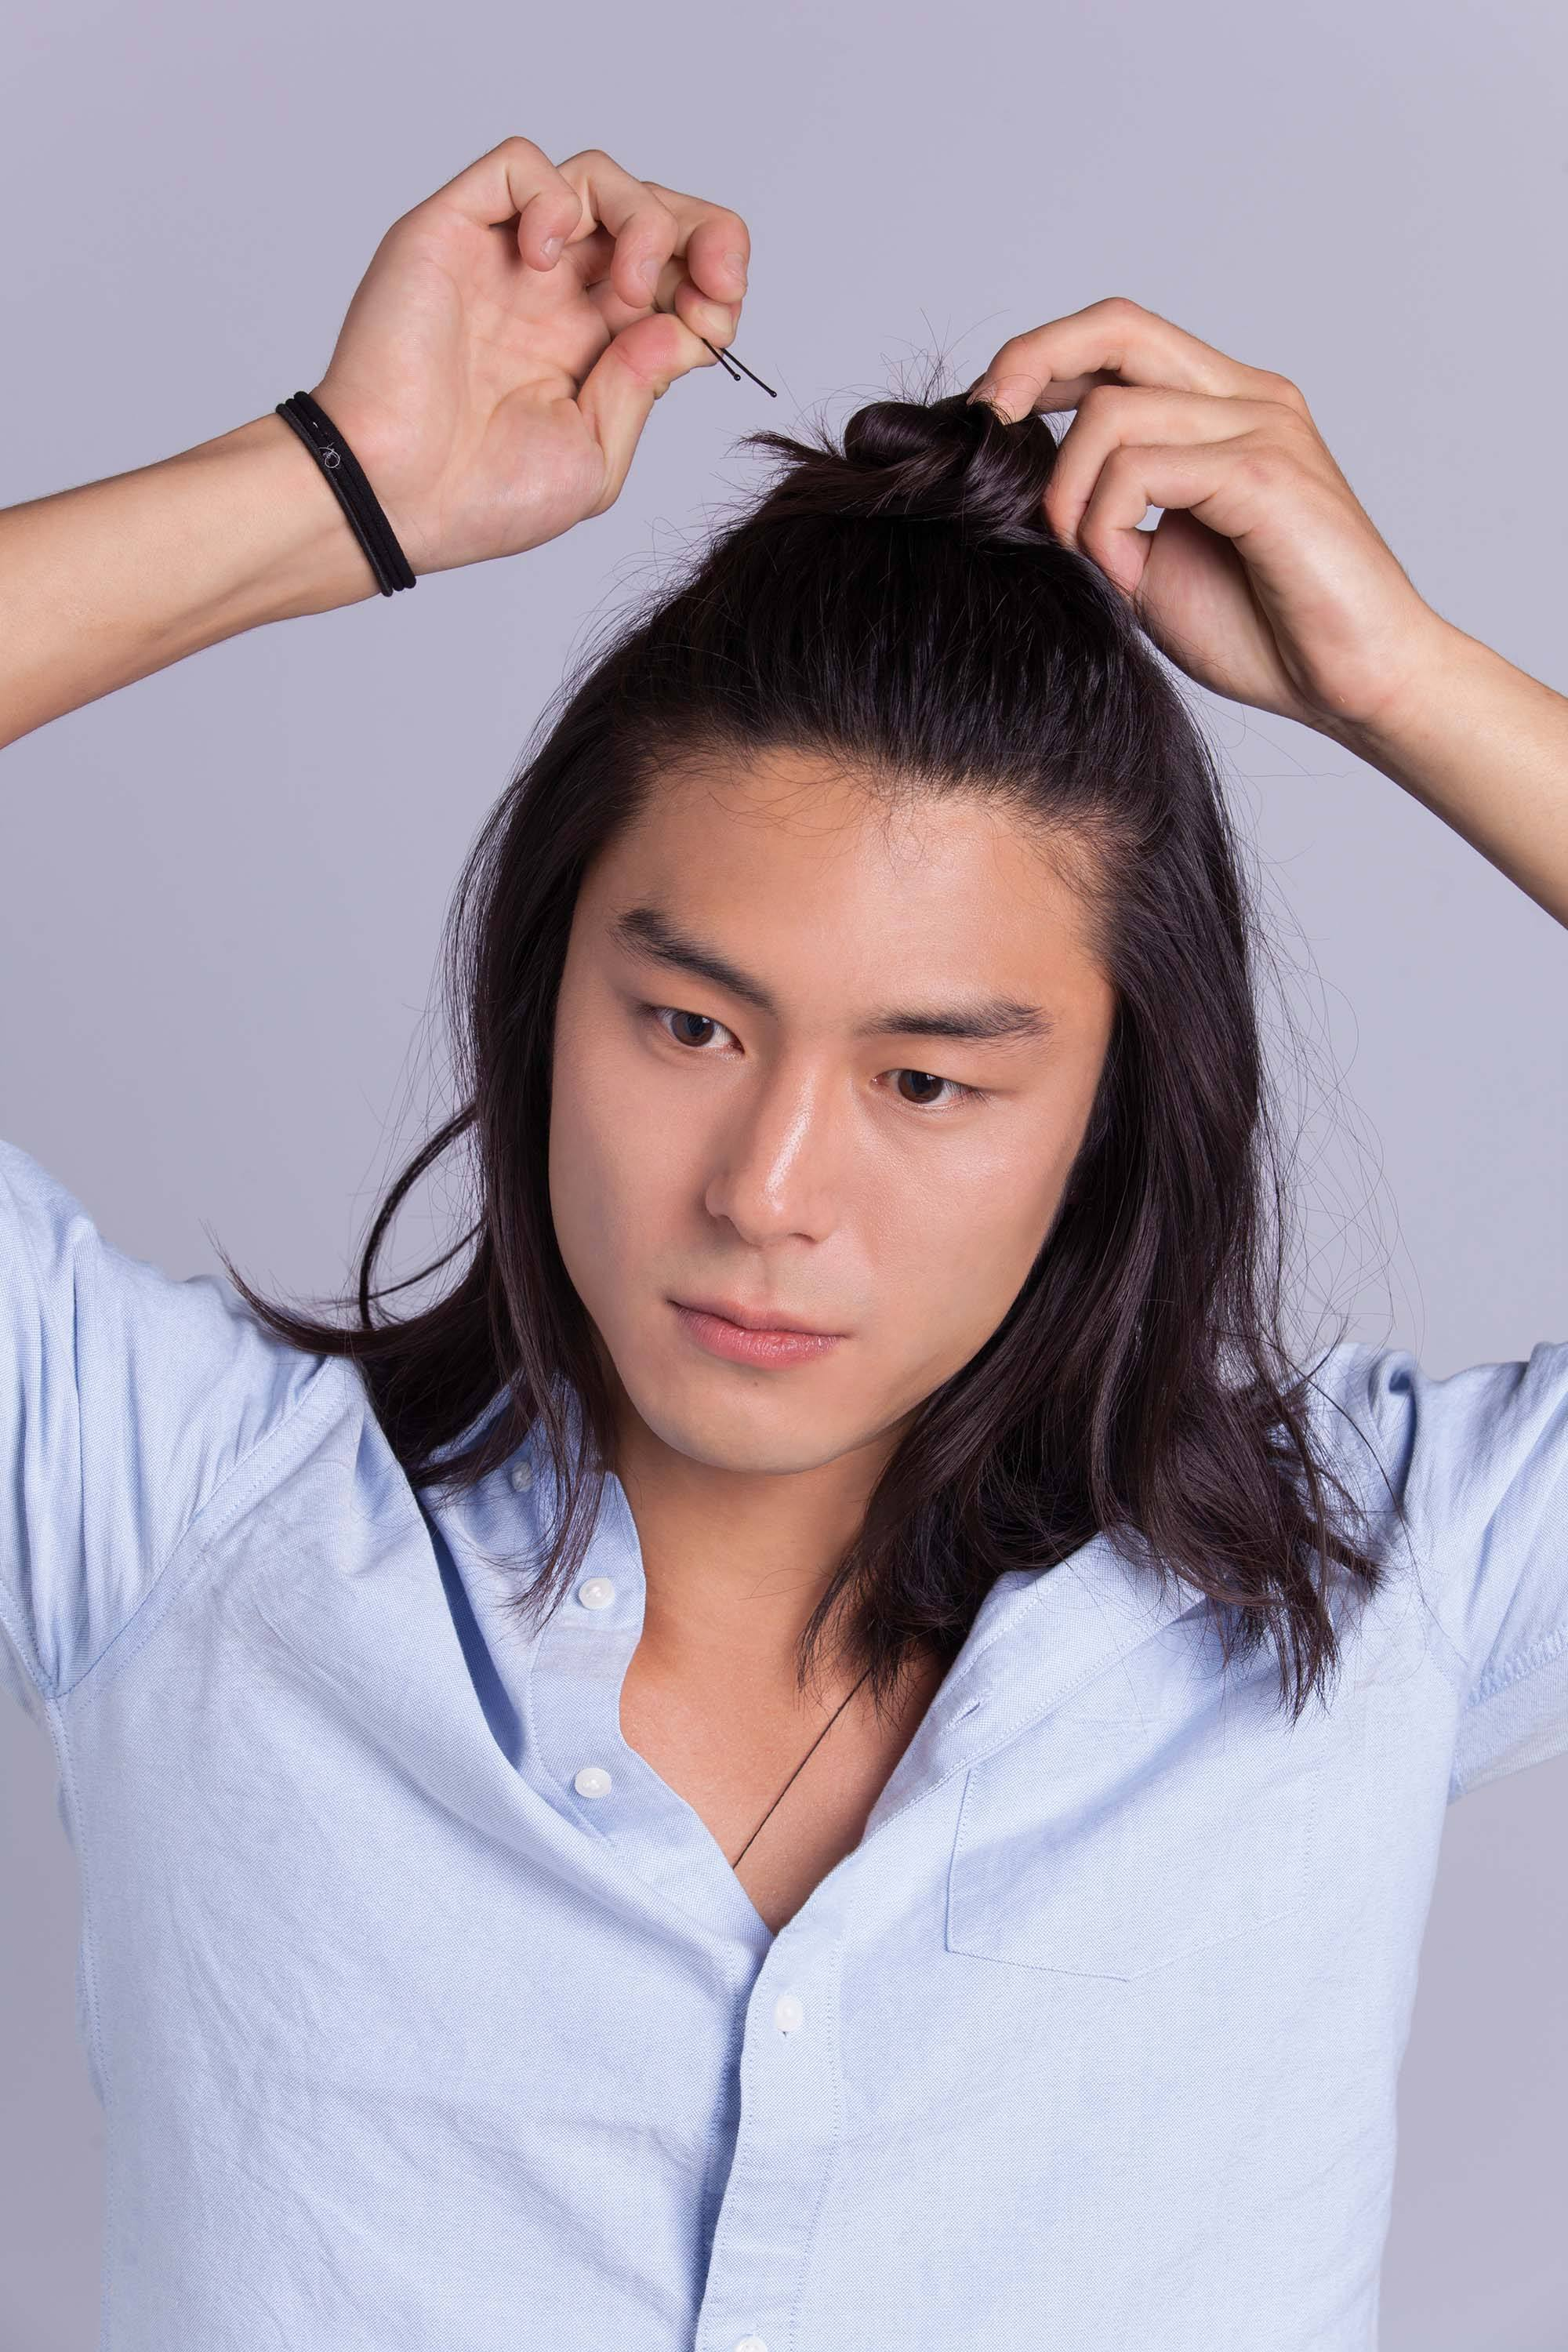 Asian man bun: Asian male model with shoulder-length hair securing half-up man bun